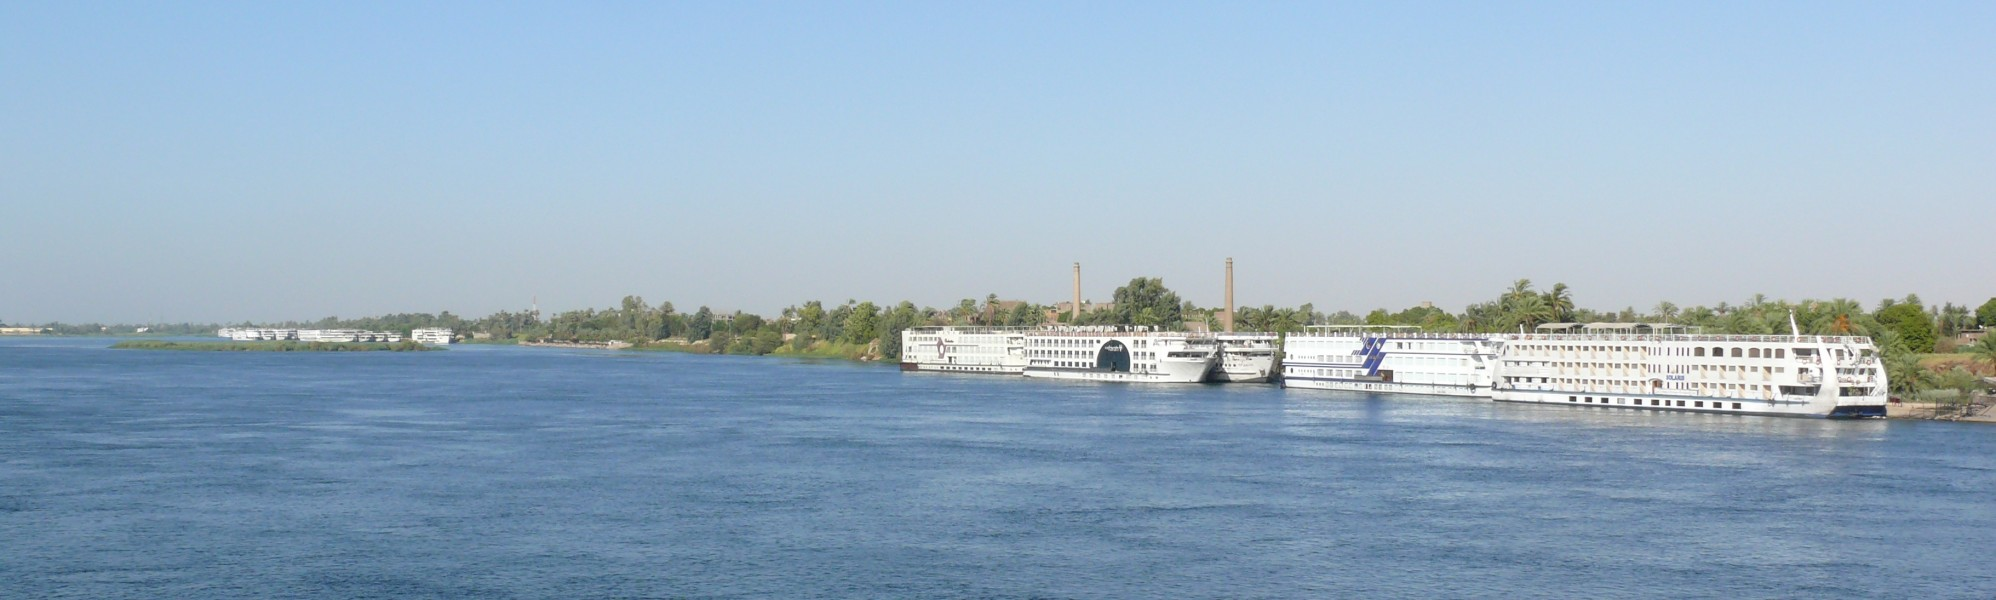 Nile cruise ships in Luxor 01